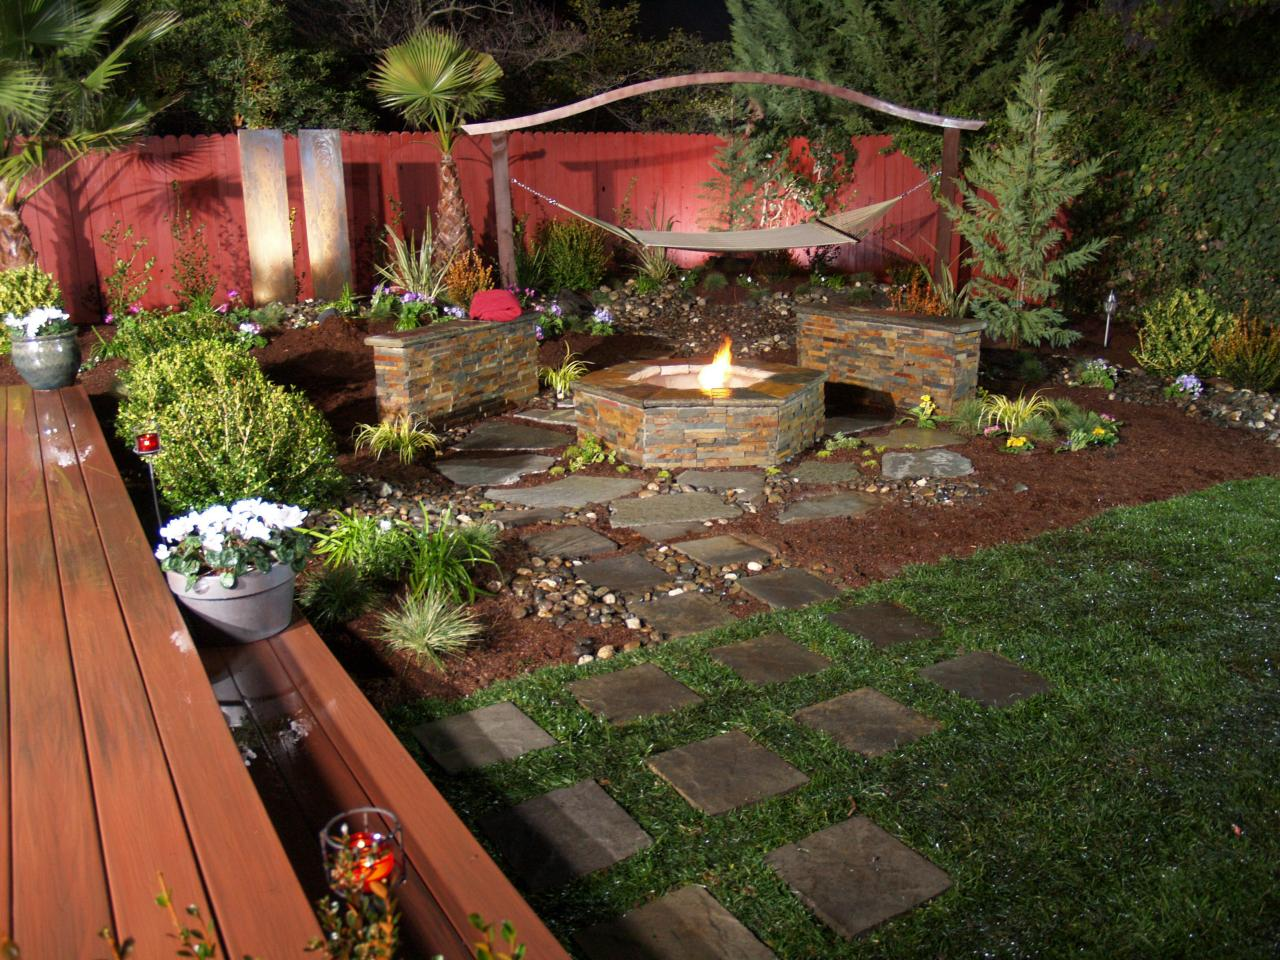 tucked away in the garden source diynetworkcom this creative firepit design - Outdoor Fire Pit Design Ideas